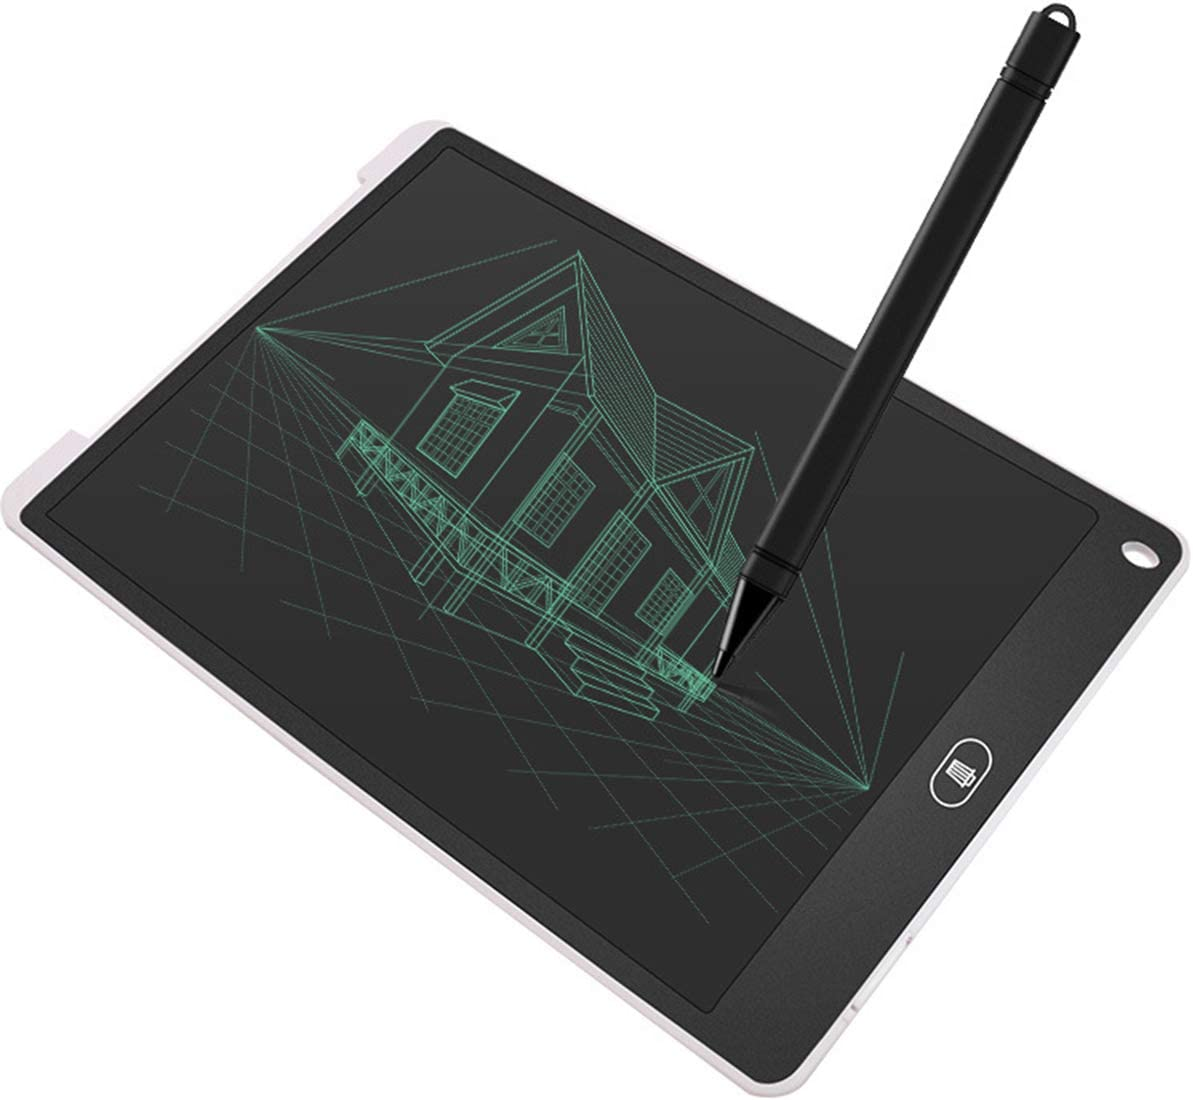 Partm Writing Tablet Handwritten Pen Intelligent Paper Children and Adults Writing Board,Electronic Writing Doodle Pad Digital Drawing Suitable for Family Office School